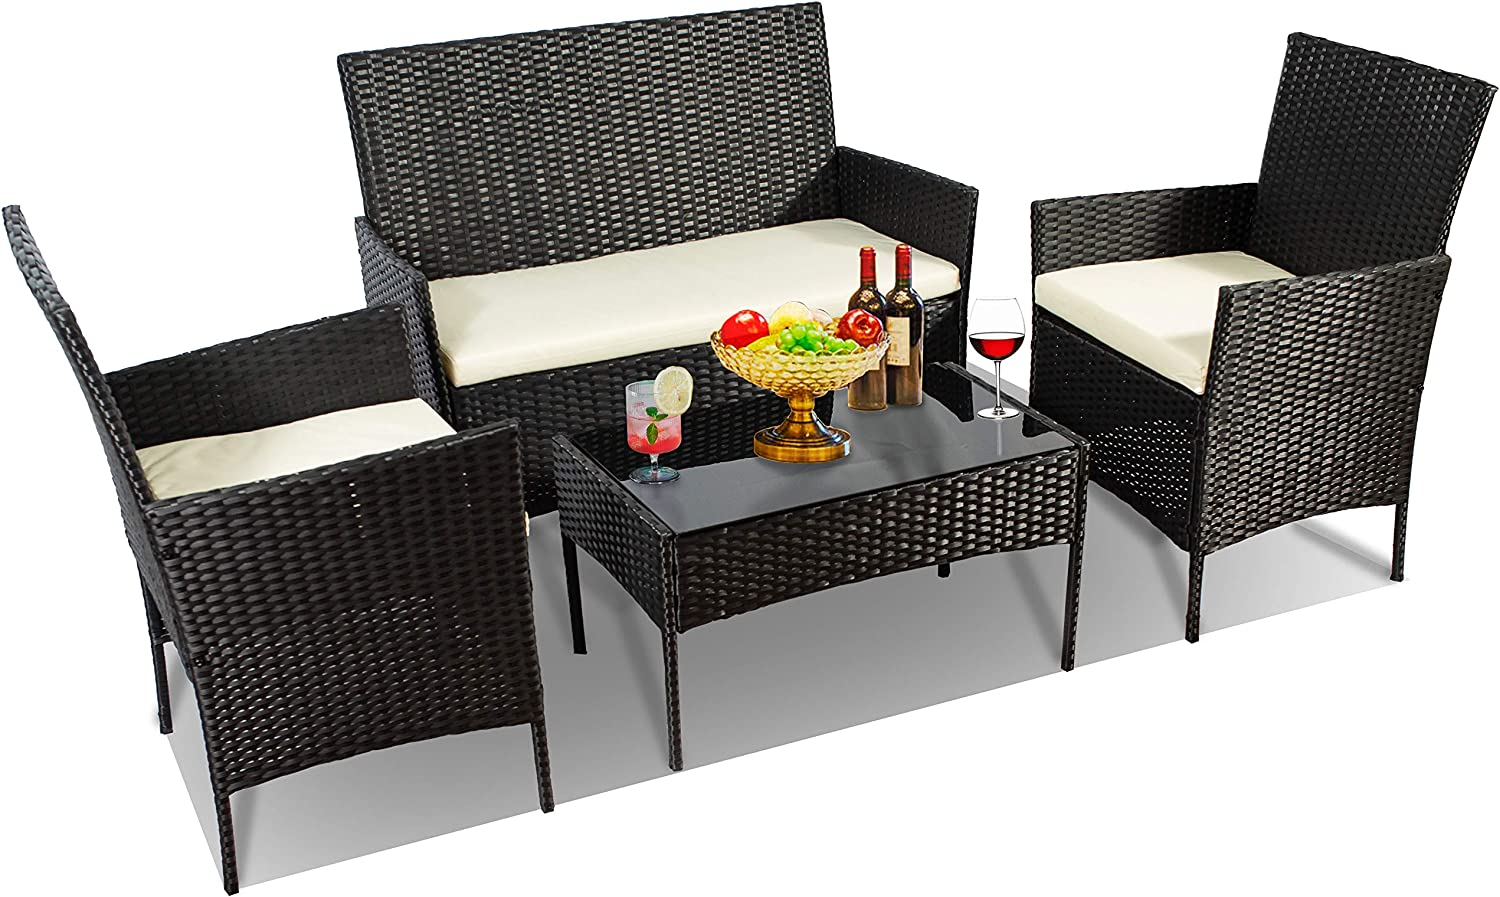 4 PC Wicker Patio Outdoor Furniture Conversation Sets, 2-Single Chairs 1-Piece Love Seat and Glass Coffee Table with Cushion Rattan Deck Set for Bistro Porch Yard Balcony Lawn (Black-Beige)